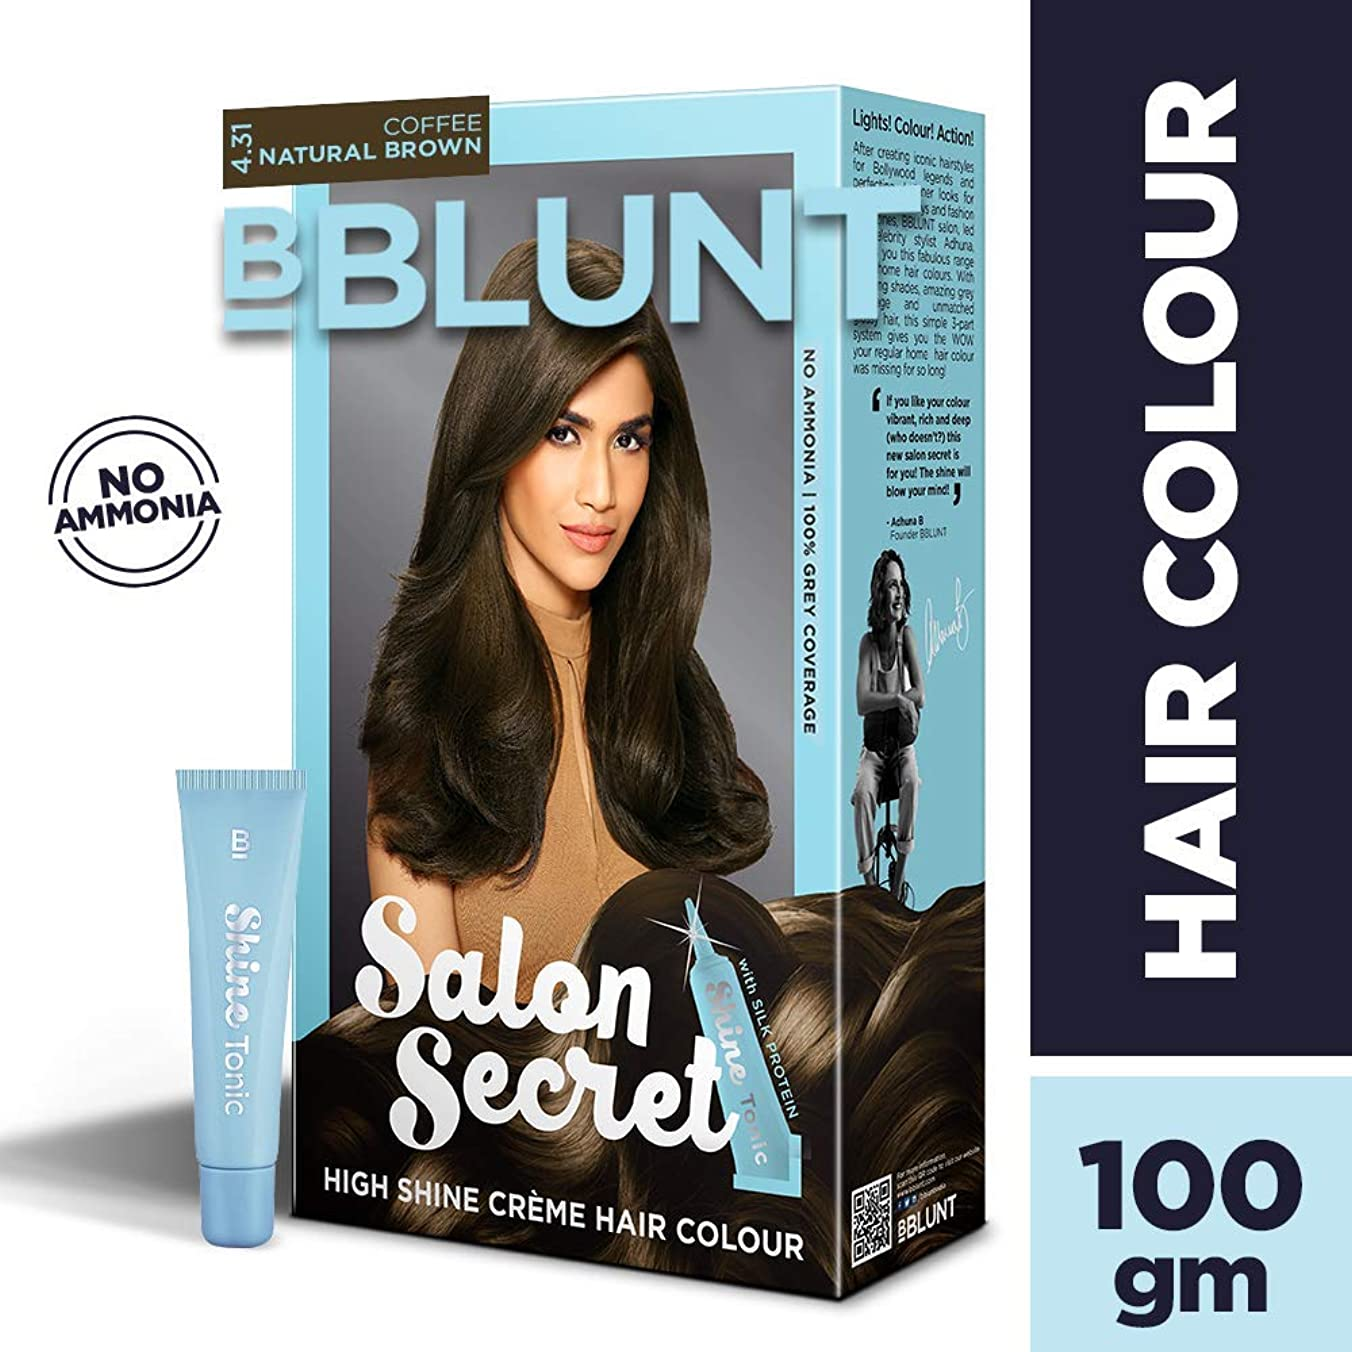 処方する手数料コレクションBBLUNT Salon Secret High Shine Creme Hair Colour, Coffee Natural Brown 4.31, 100g with Shine Tonic, 8ml